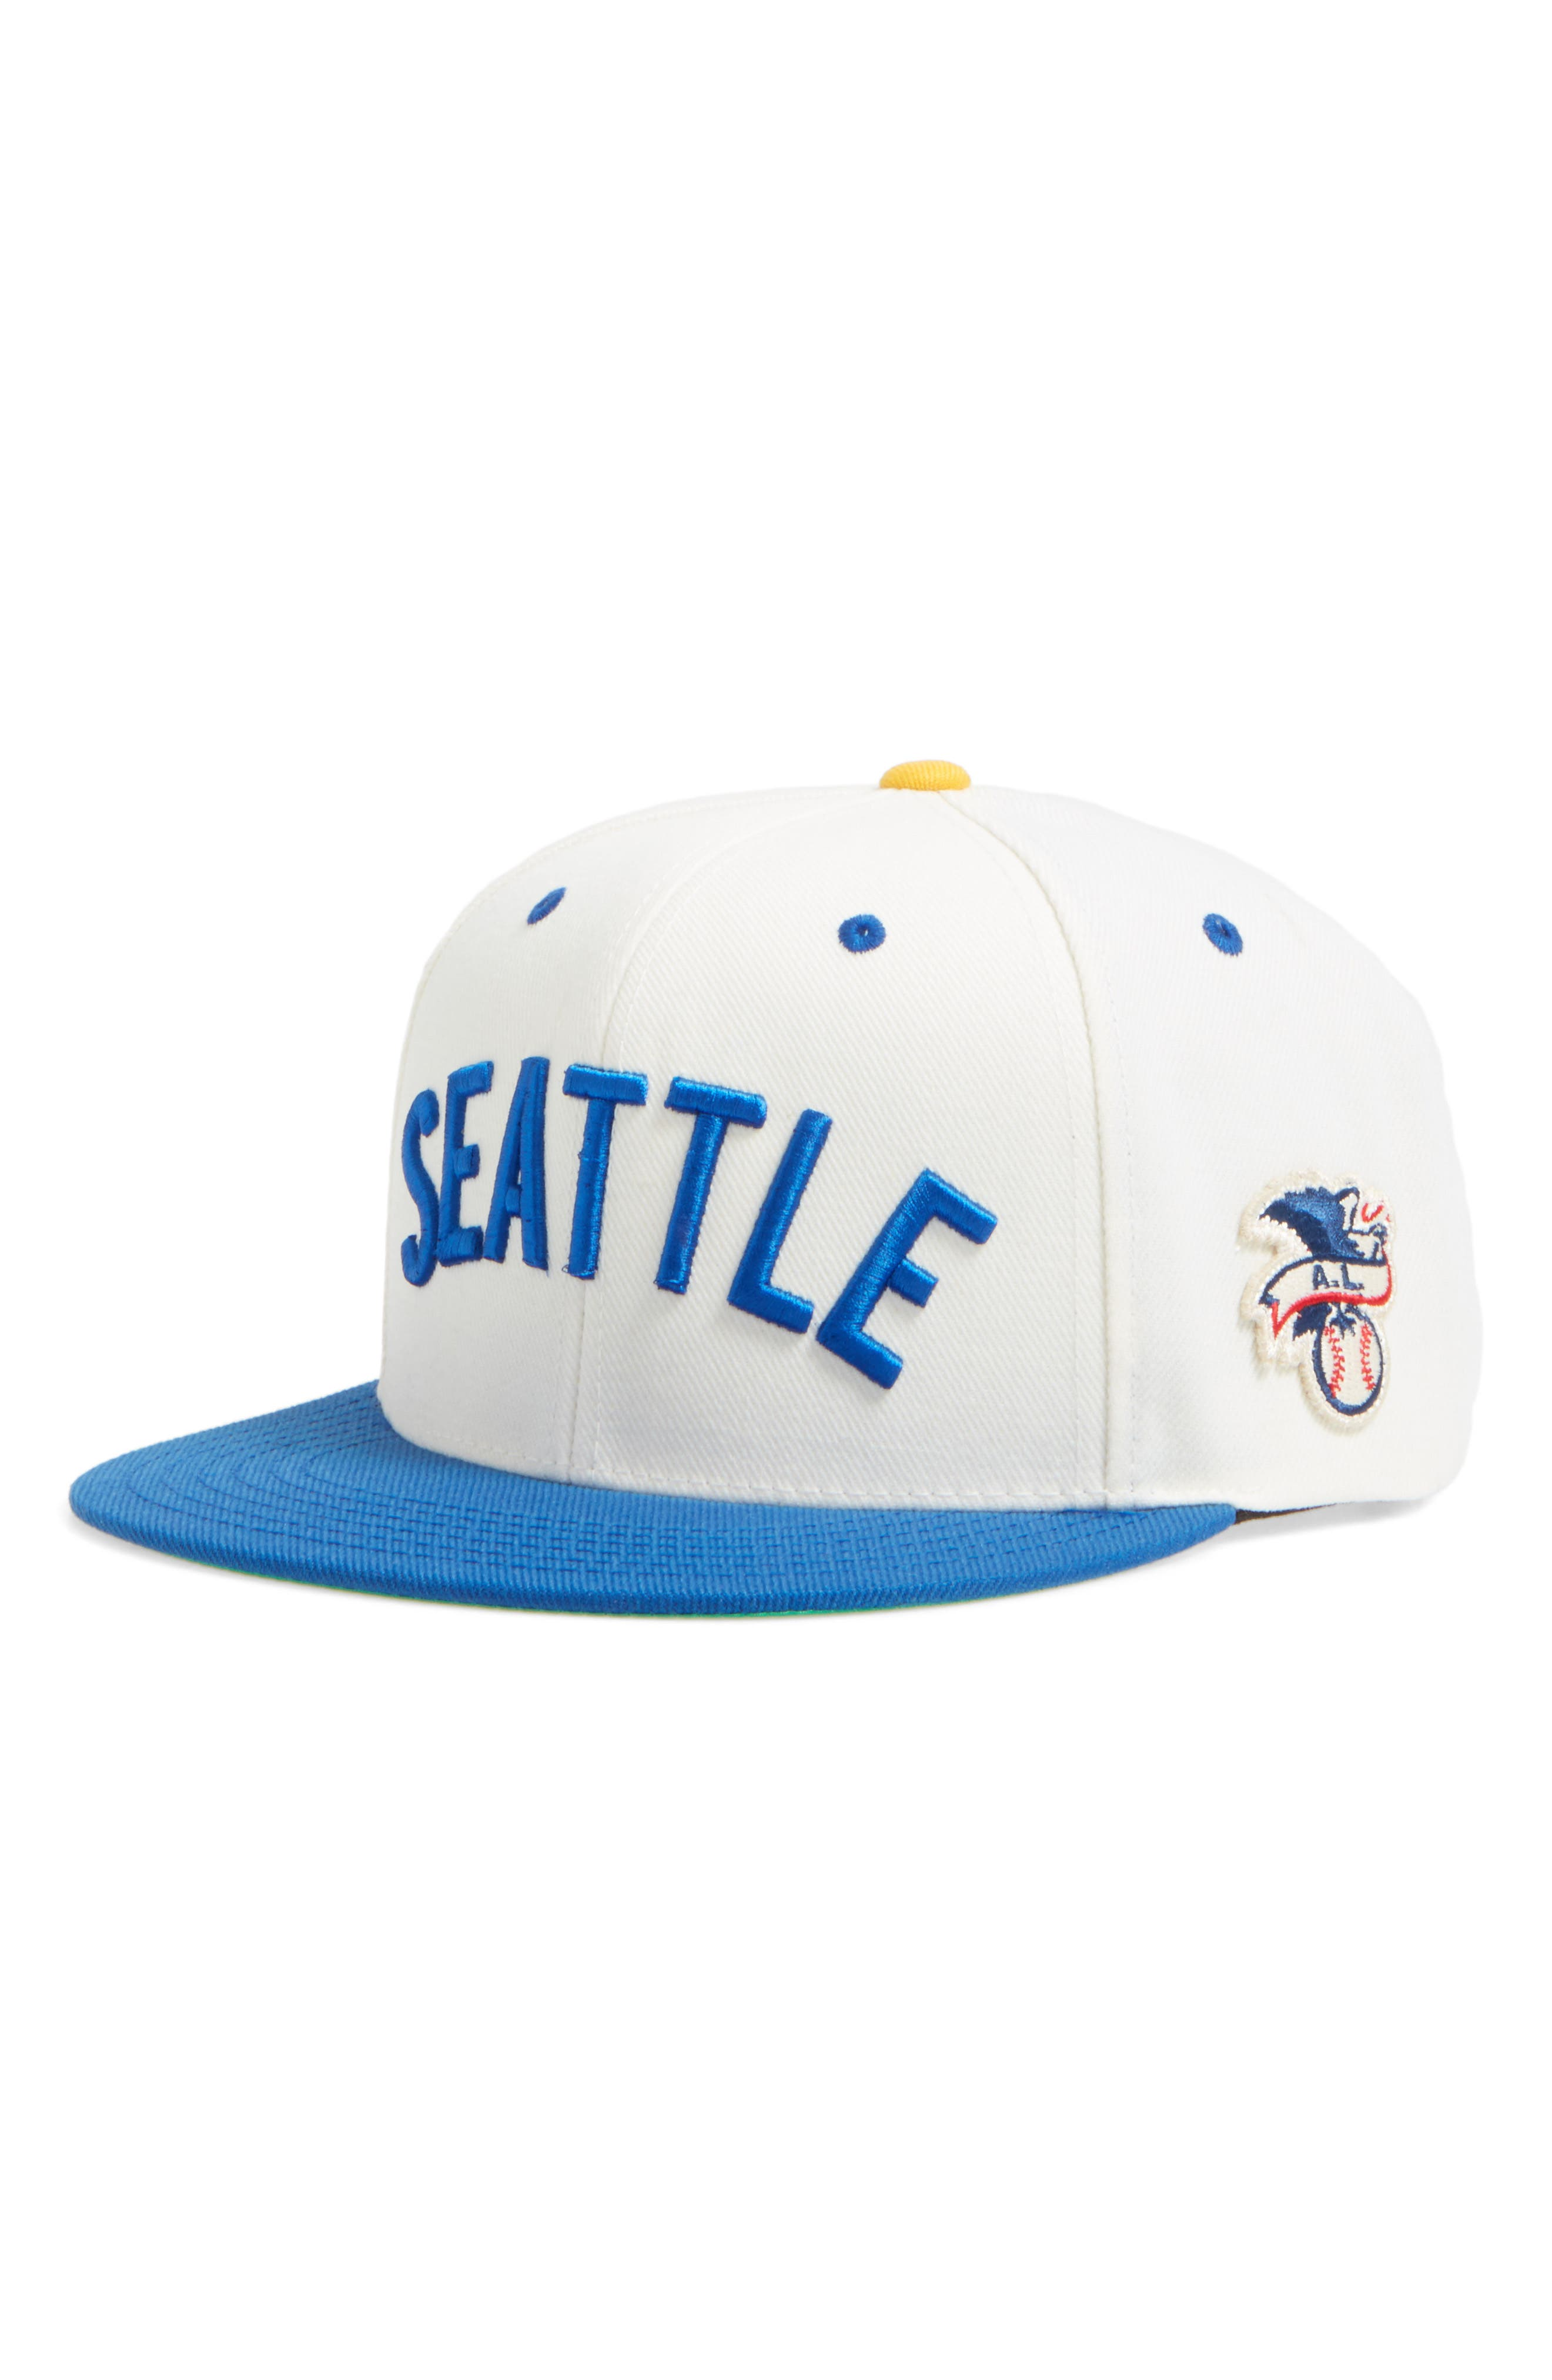 American Needle United MLB Snapback Baseball Cap